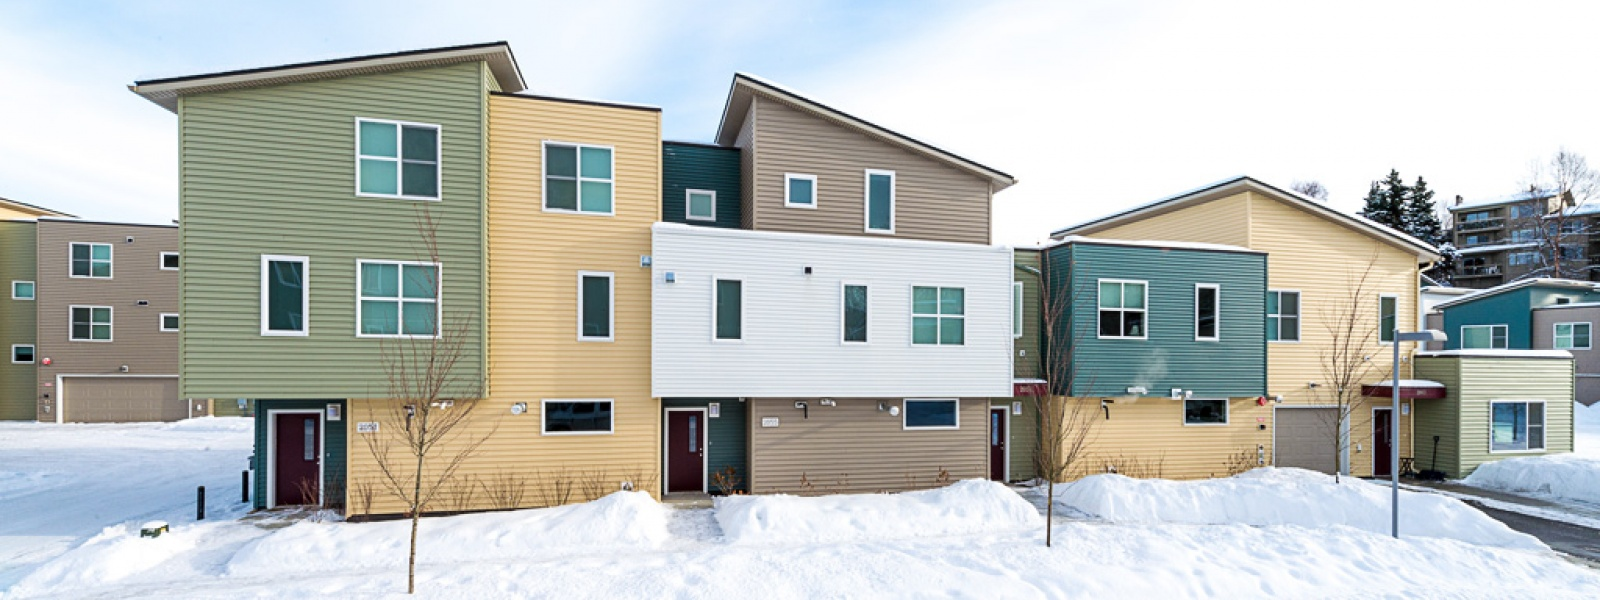 200 20th Avenue, Anchorage, Alaska, 99501, 1 Bedroom Bedrooms, ,1 BathroomBathrooms,Townhome,For Rent,20th Avenue,1038